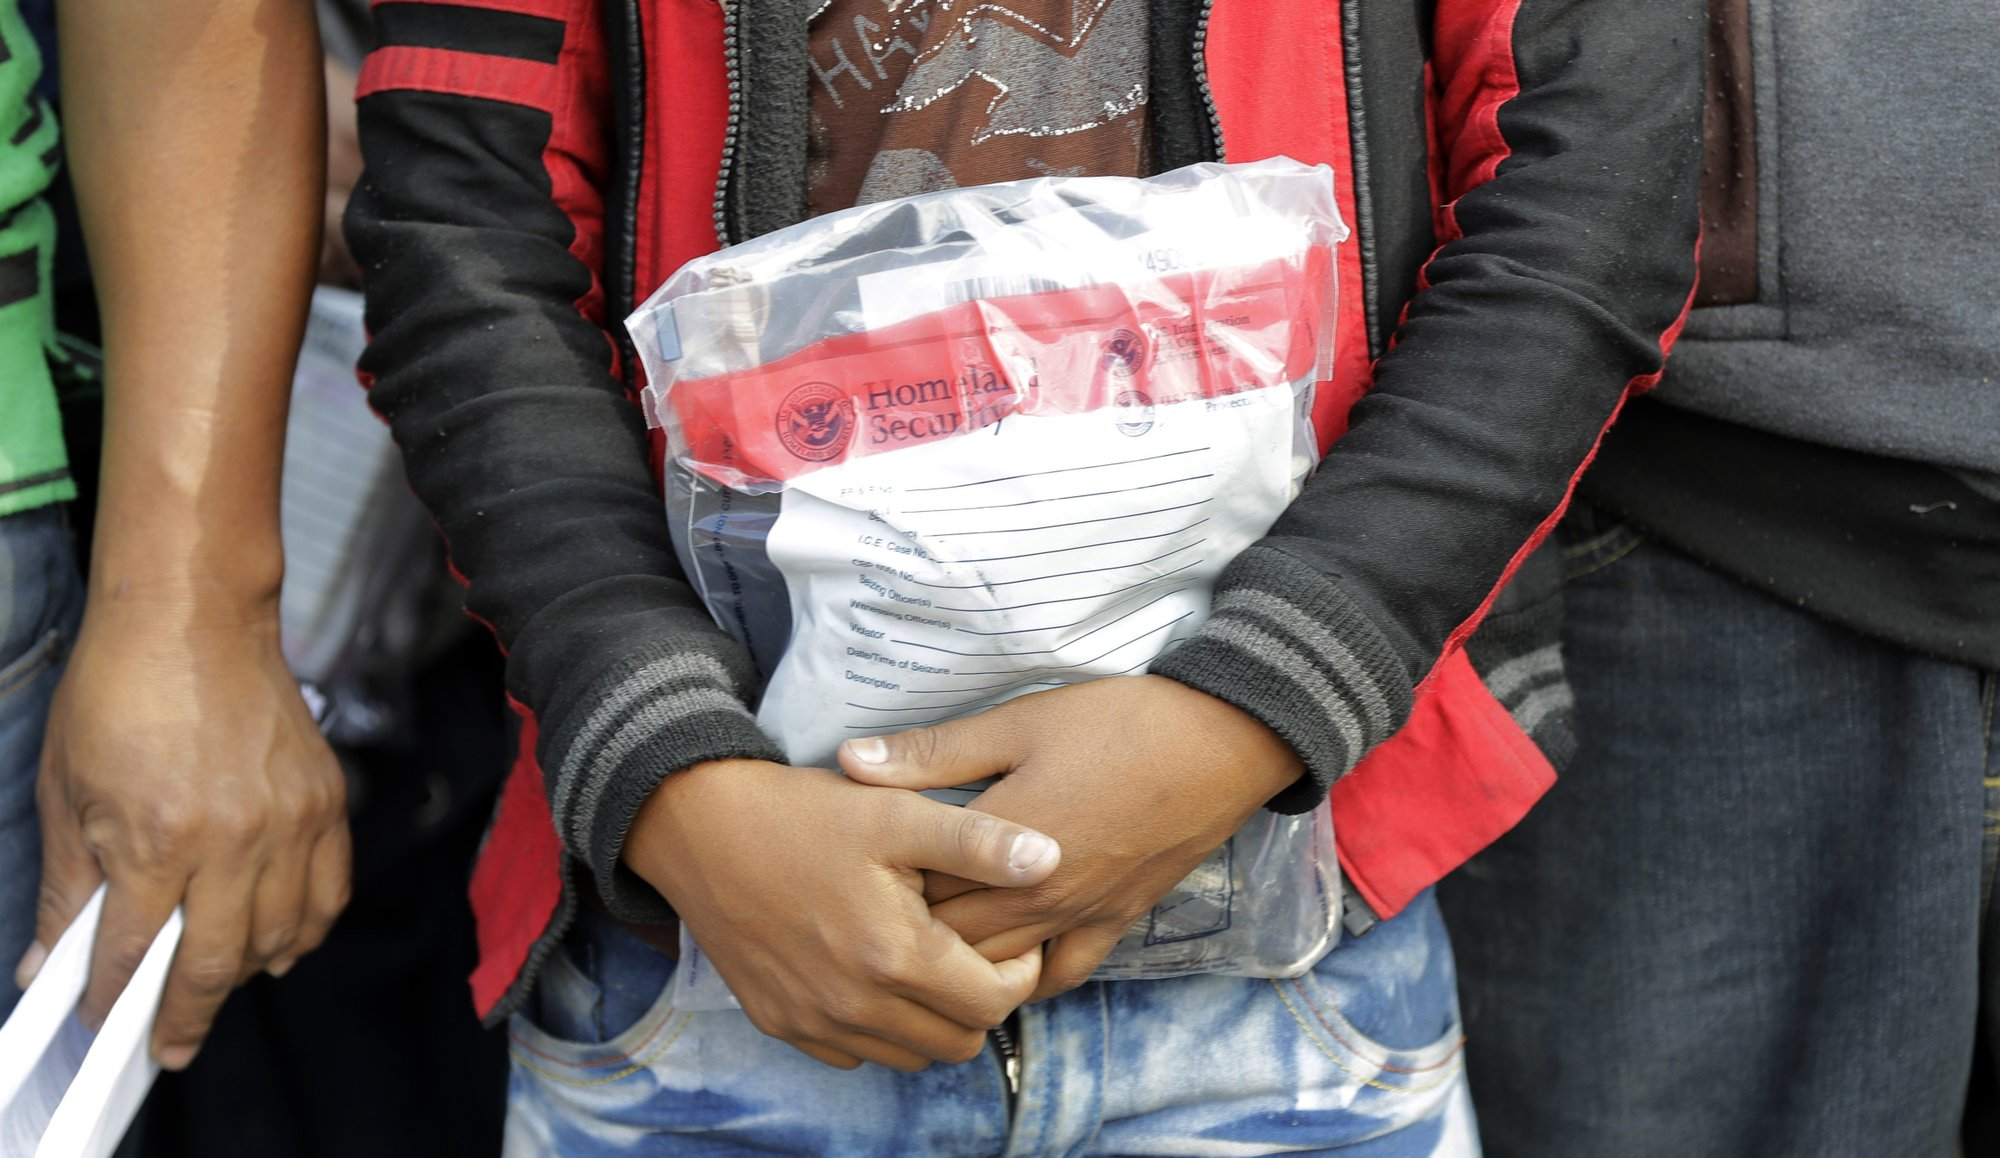 Migrant kids could end up in already strained foster system